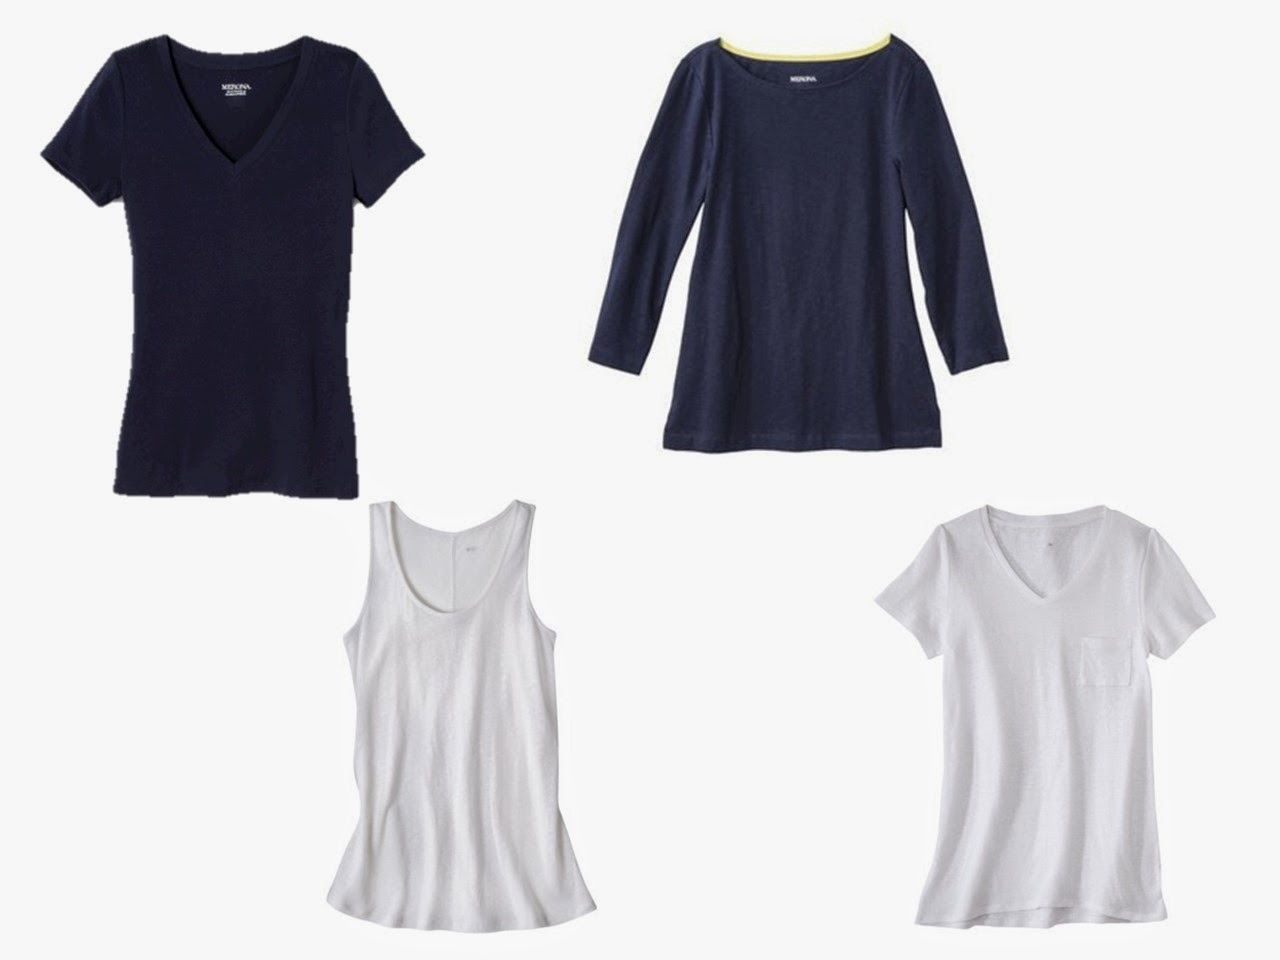 two navy tops and two white tops from Target for a navy and beige wardrobe